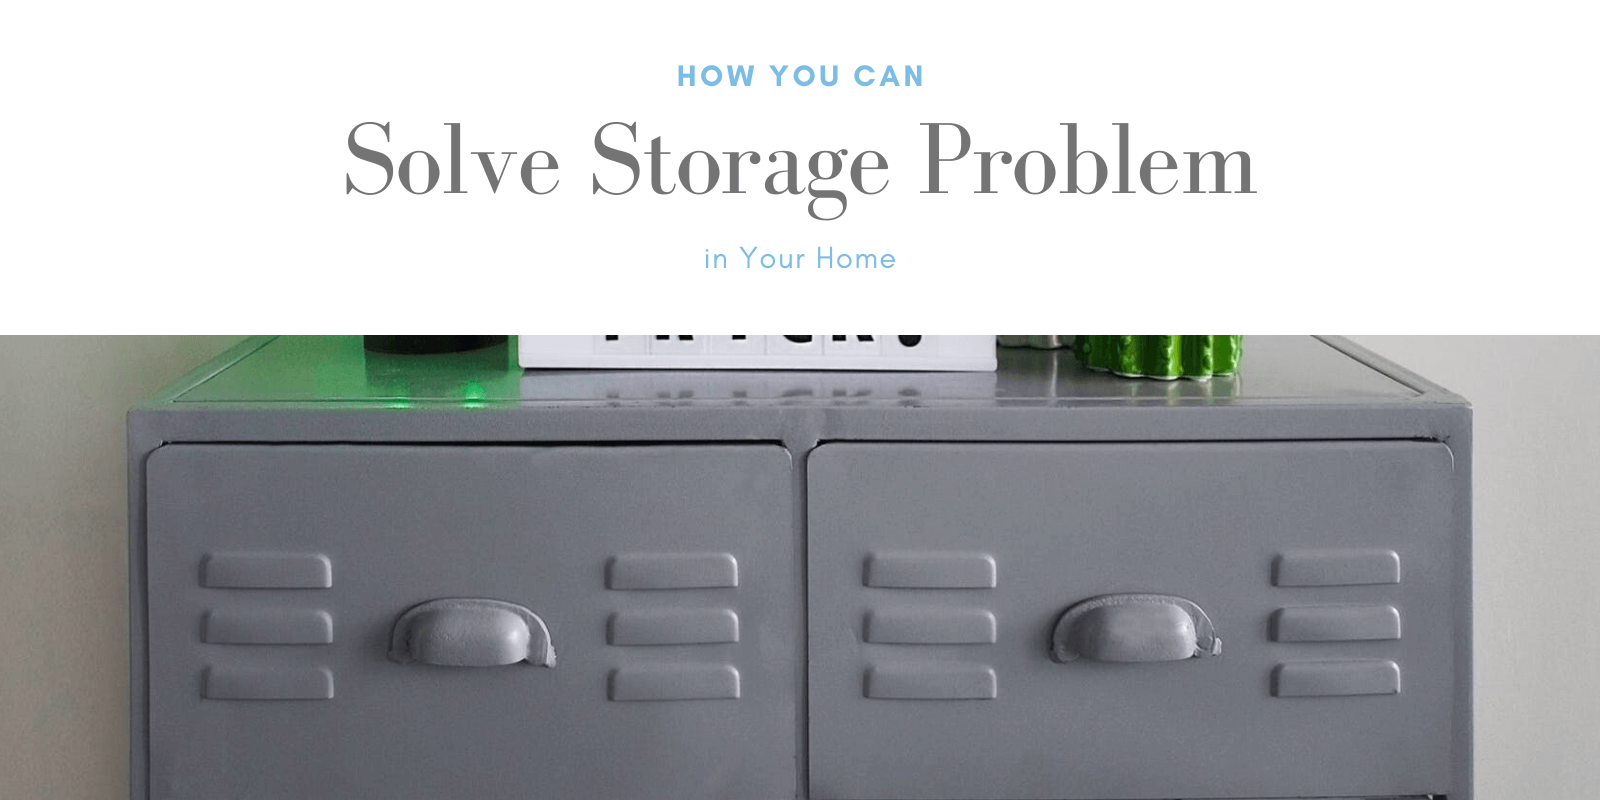 How You Can Solve Storage Problem in Your Home